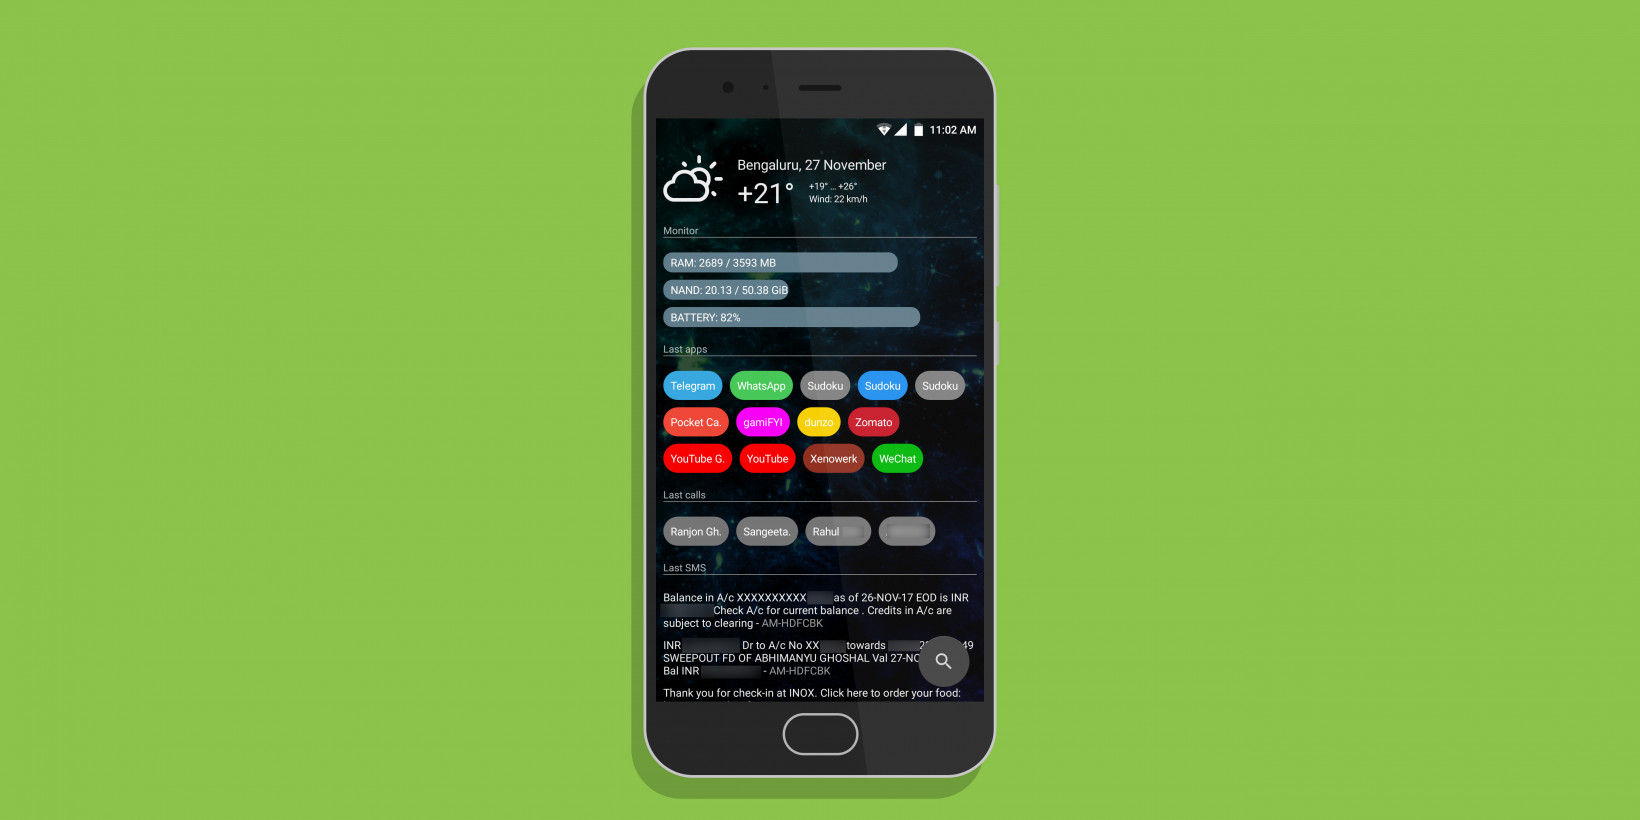 This bonkers launcher will delight Android fans who favor function over form